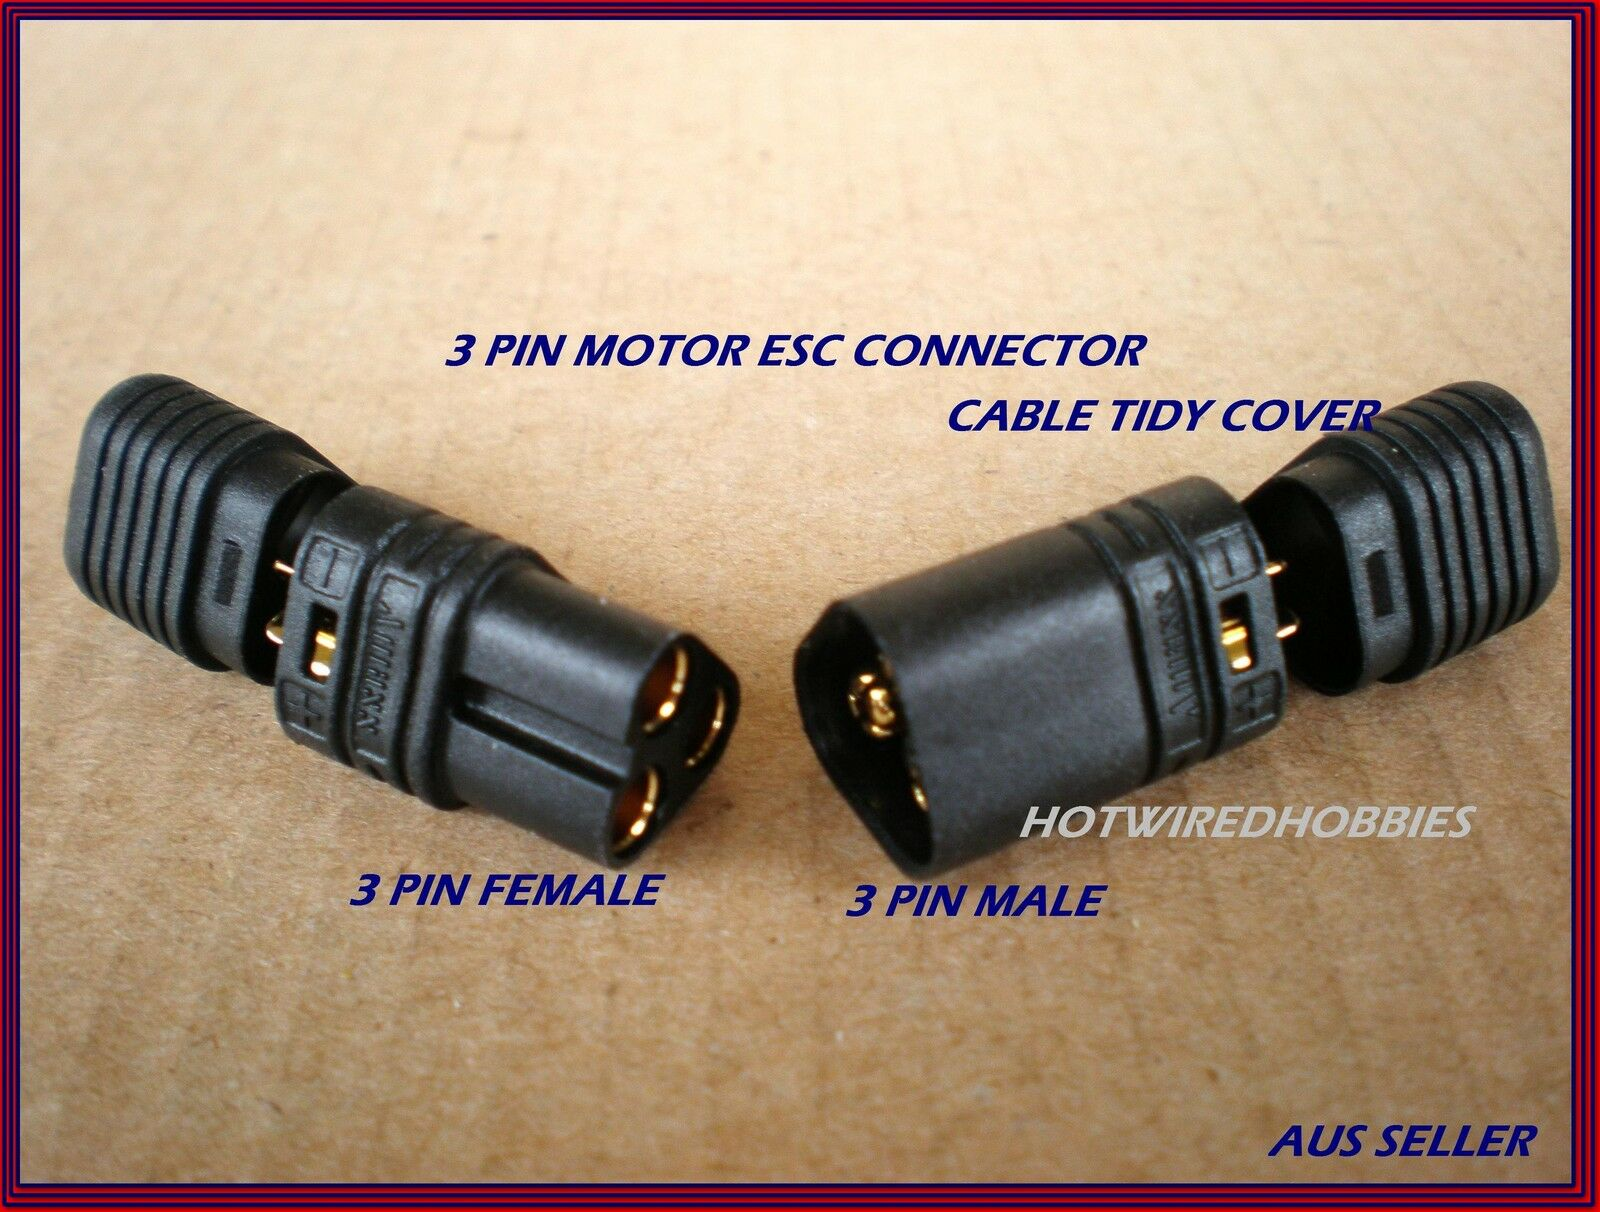 Mt60 3 Pin Motor Esc Connector In Black Traxxas Deans Xt60 Accucel 6 Electrical Plug Wiring Diagram Australia 1 X Male Female Wire Connectors For